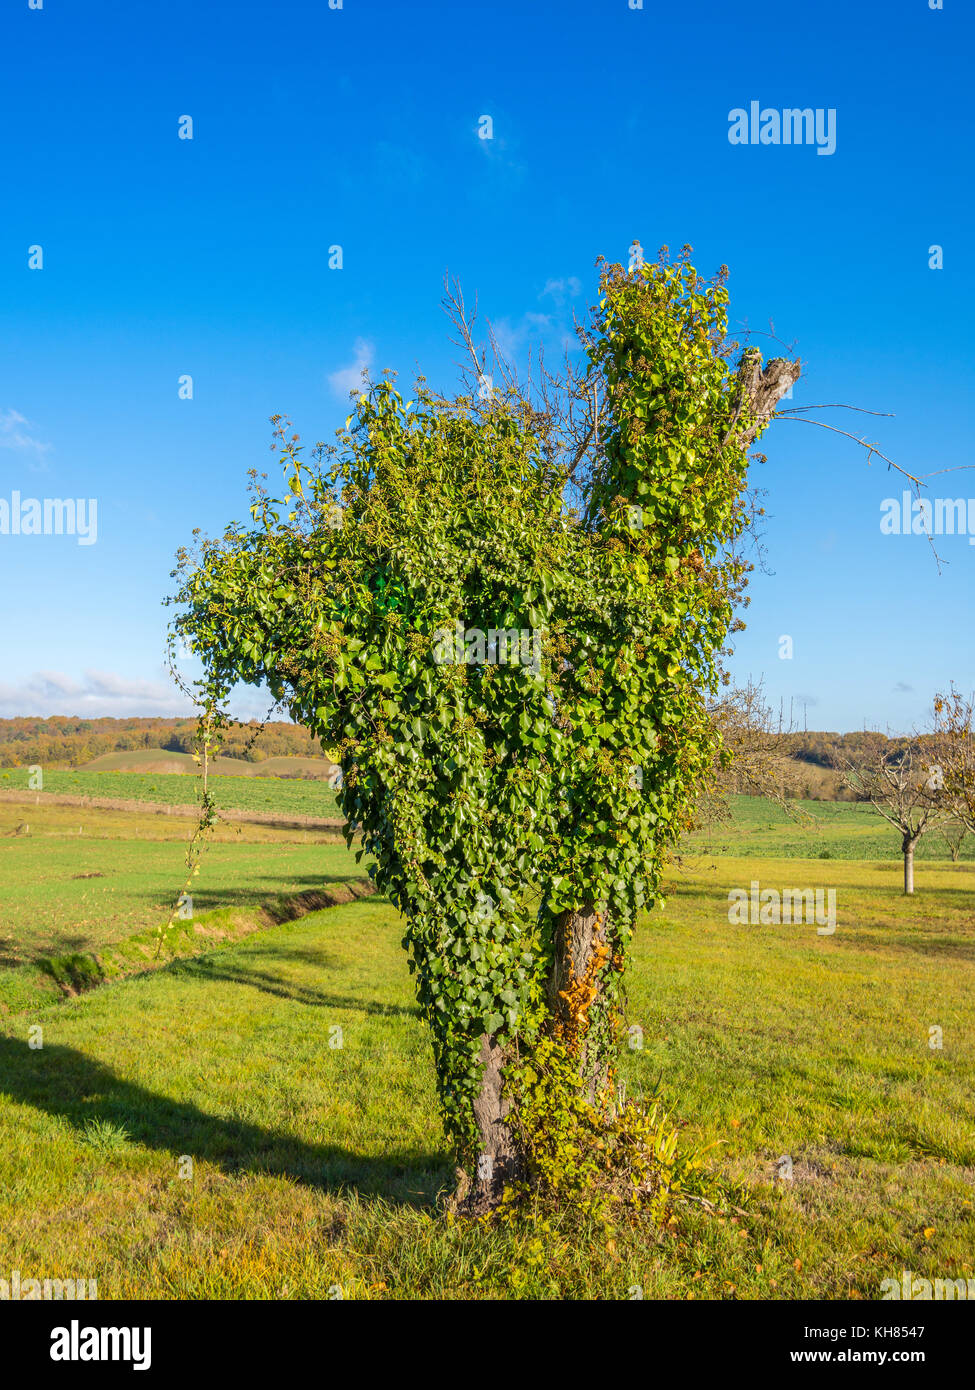 Dying apple tree from Creeping Ivy growth - France. - Stock Image